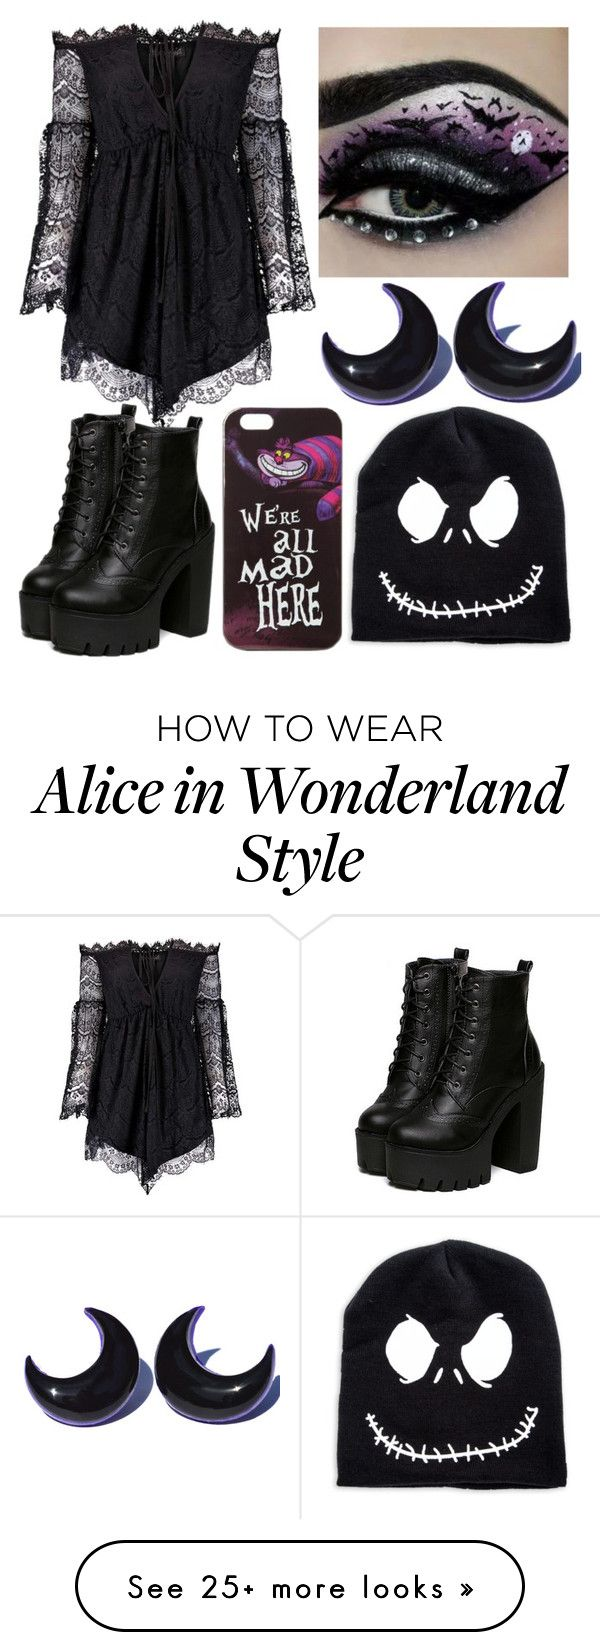 """Spooky Look"" by rita-semedo on Polyvore featuring Anja and Disney"